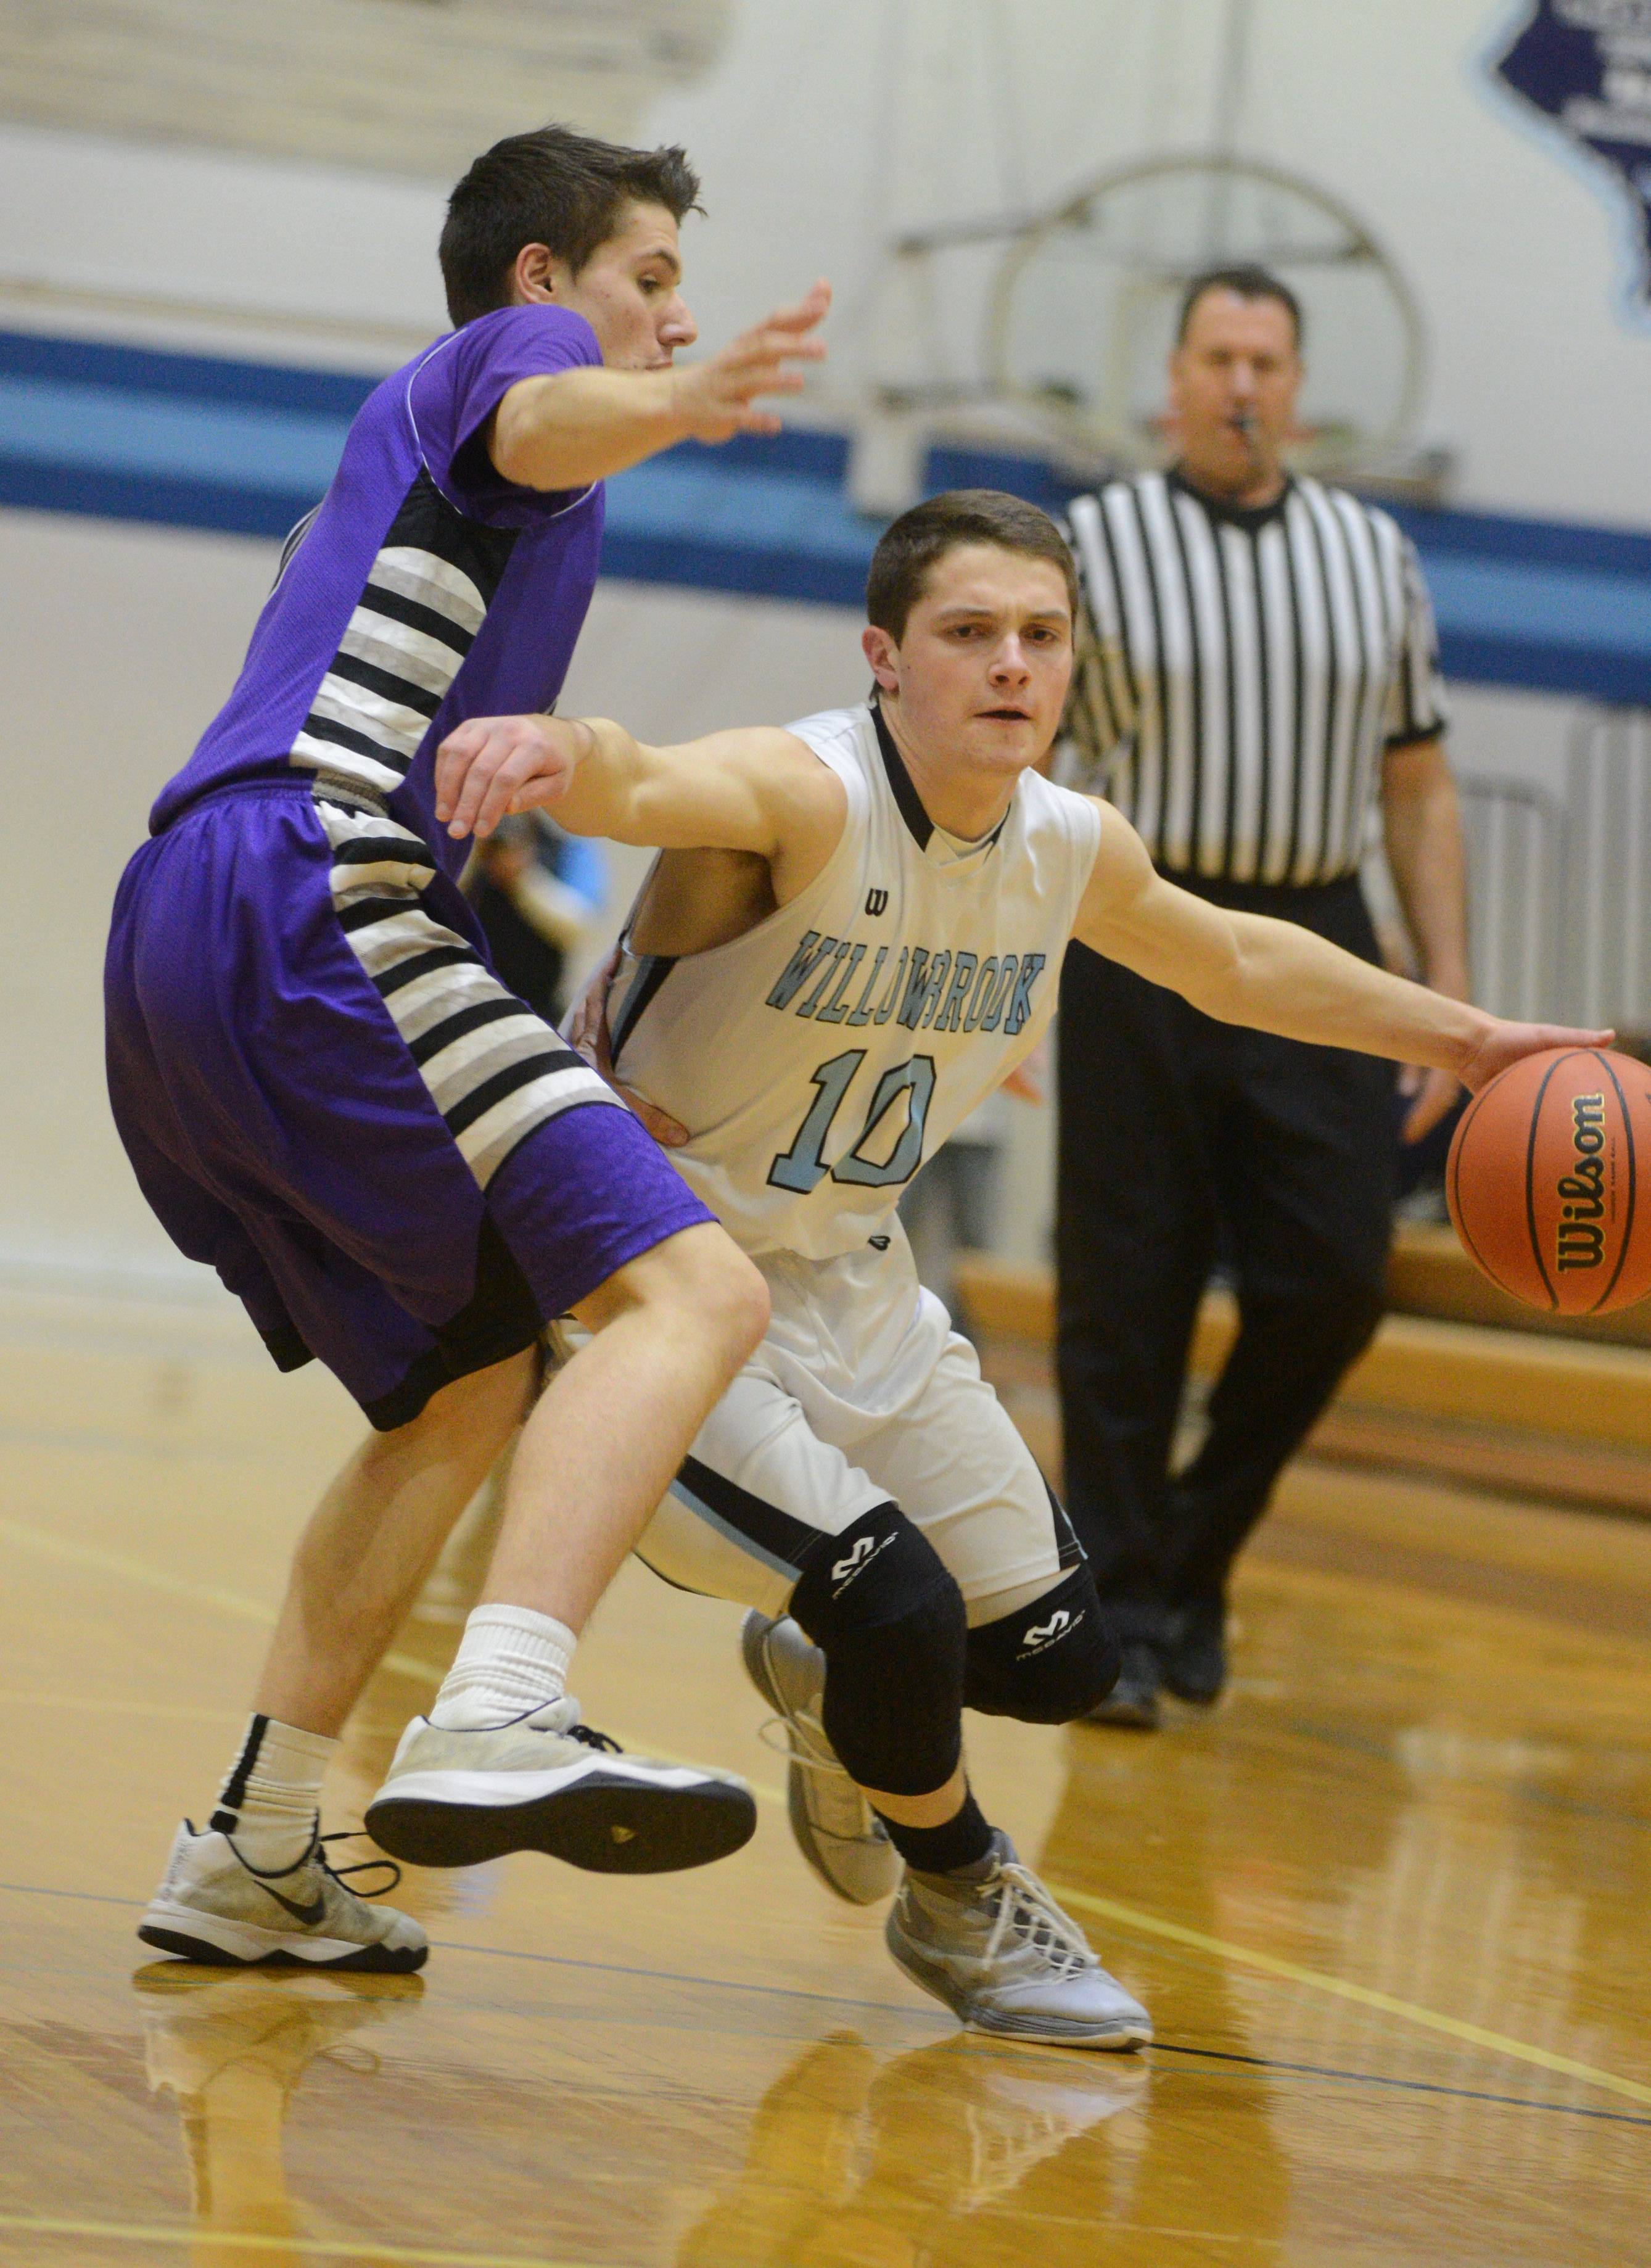 Images: Willowbrook vs. Downers Grove North, boys basketball